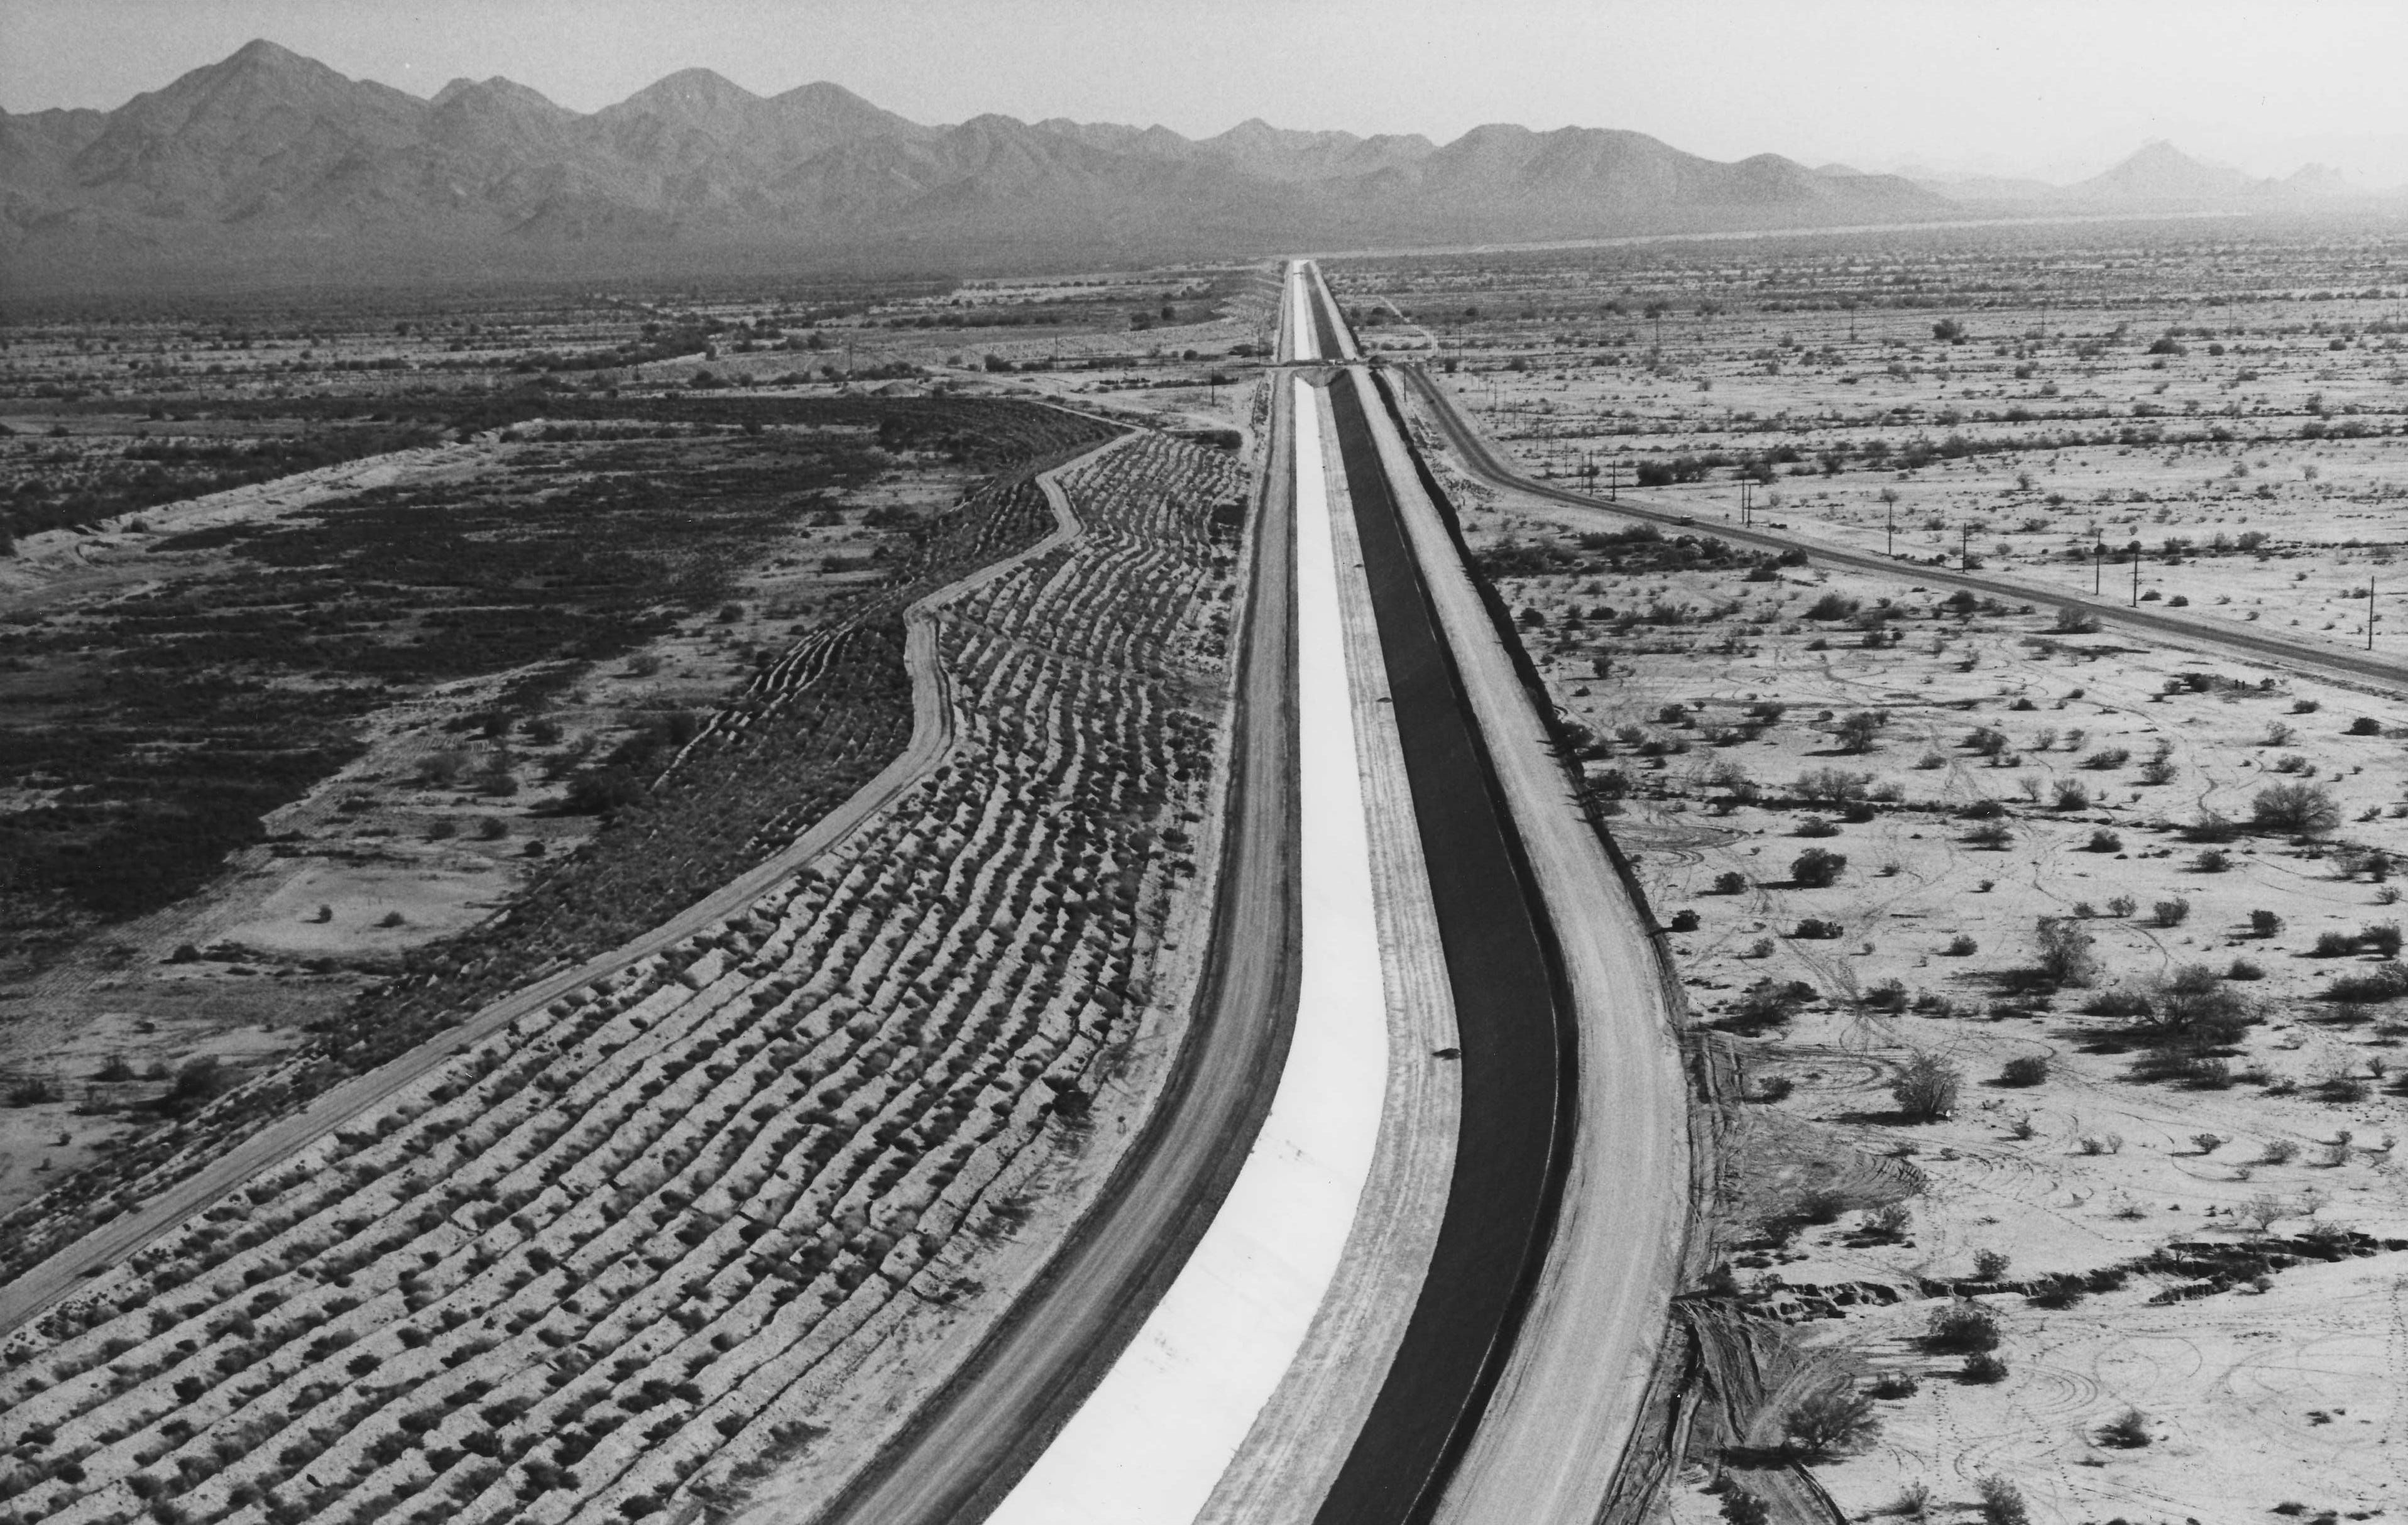 Phoenix Gazette 1/3/1979 This photo from the late 70s shows Granite Reef Aqueduct and Scottsdale Road crossing the aqueduct in the upper center of the photo.